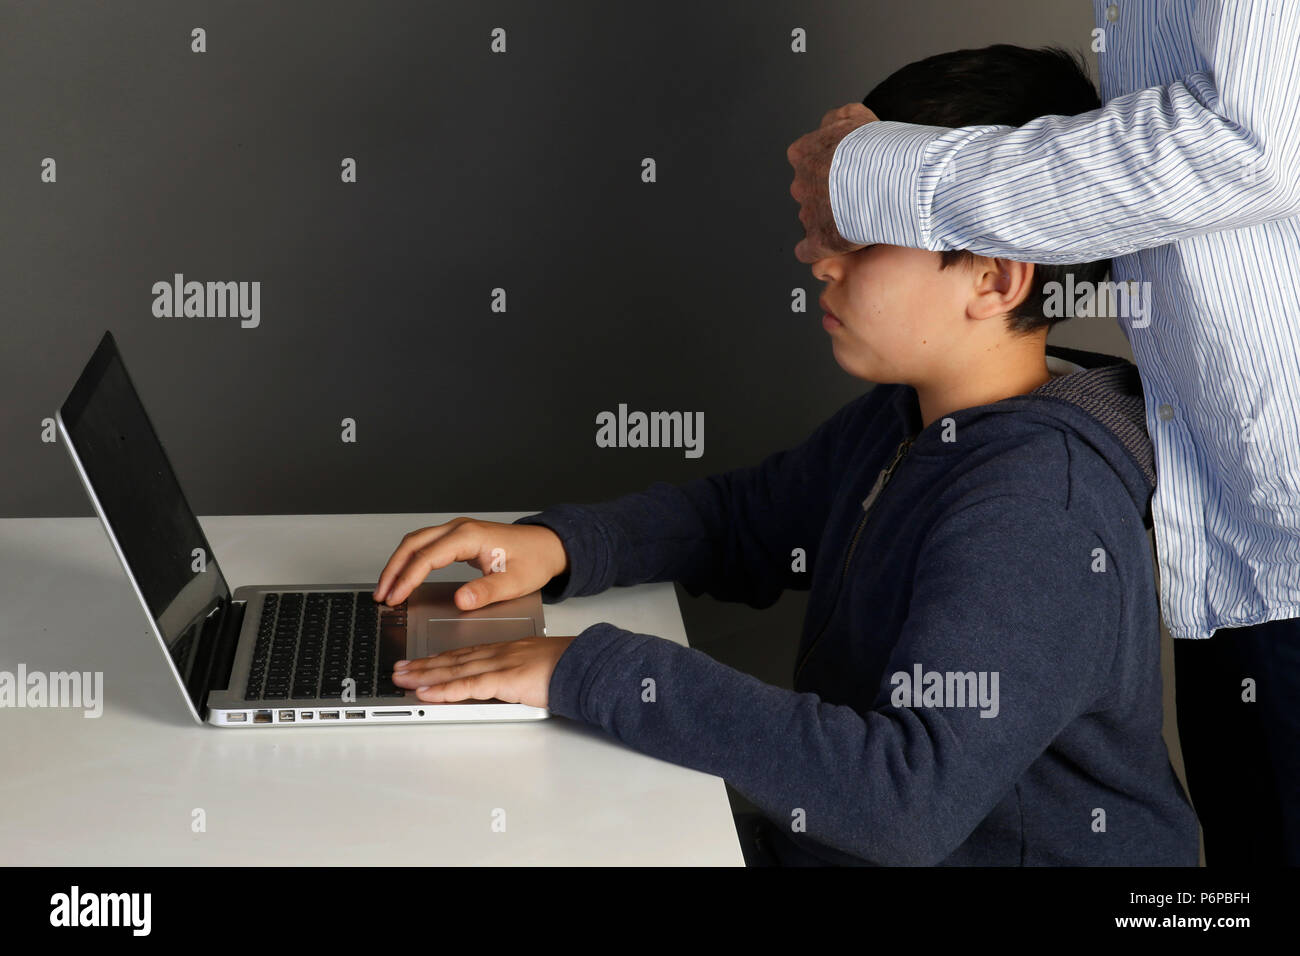 12-year-old boy forbidden to look at an internet site. Paris, France. - Stock Image